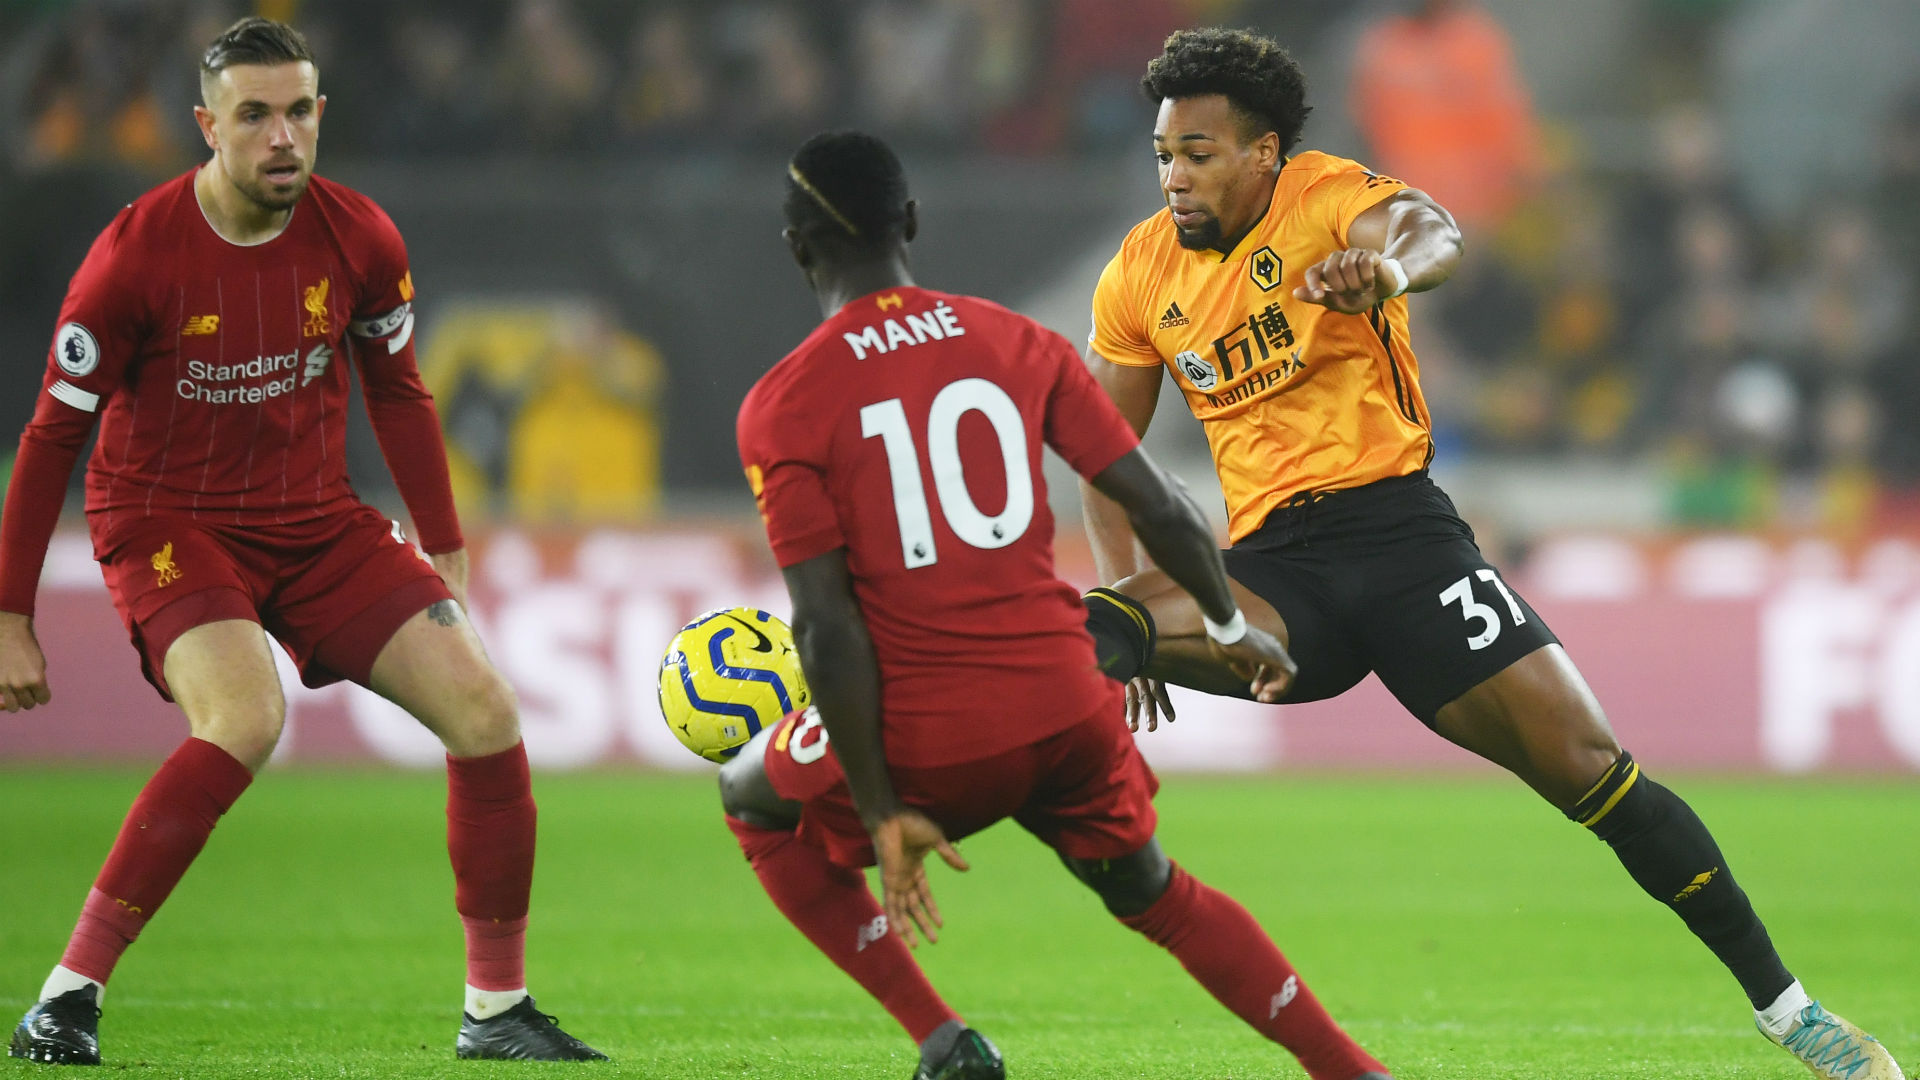 'There is more to come from Wolves' Adama Traore' - Joe Cole